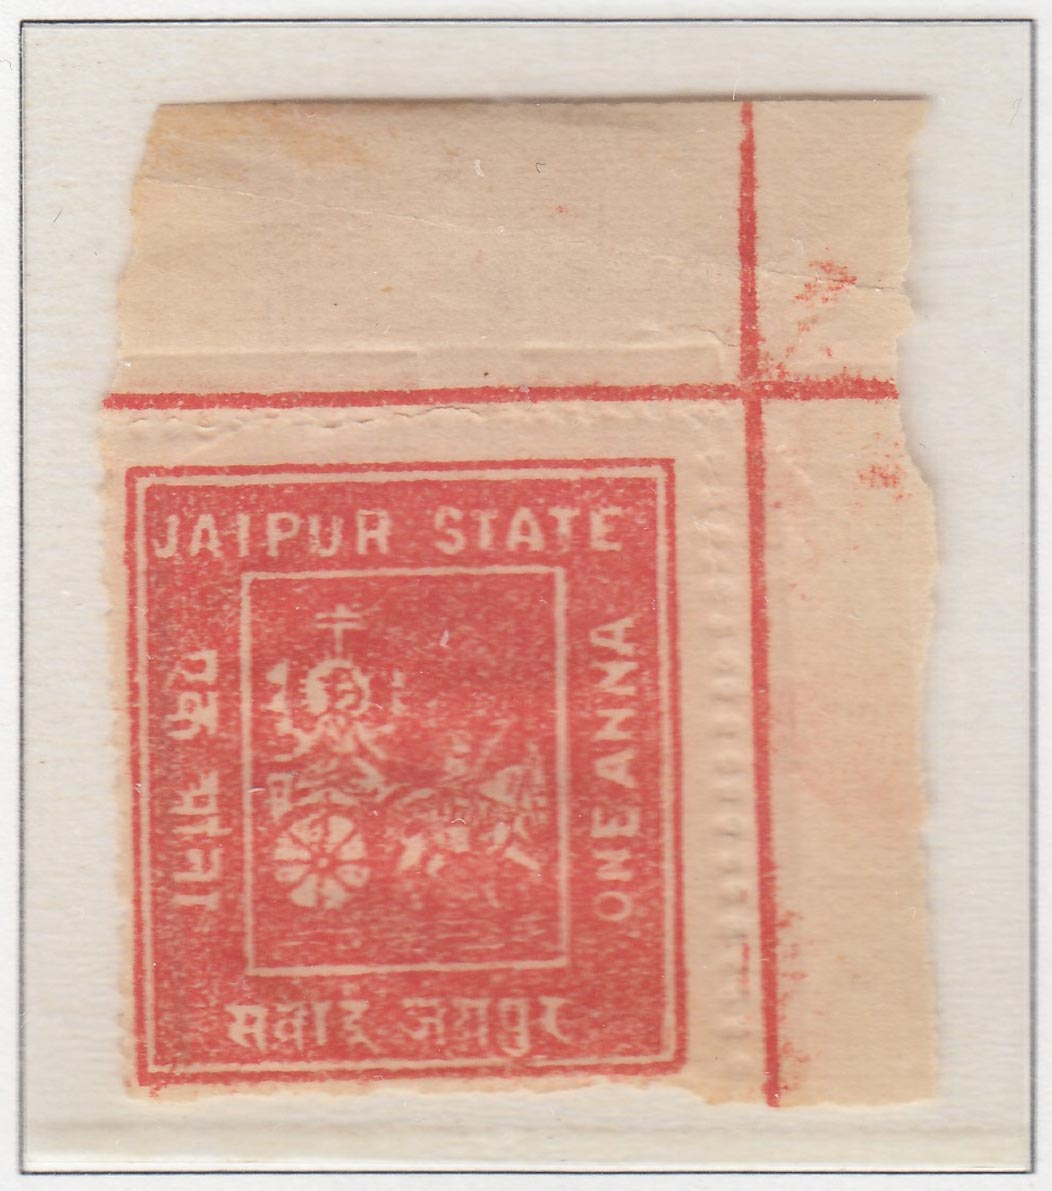 9-jaipur-one-anna-dull-red